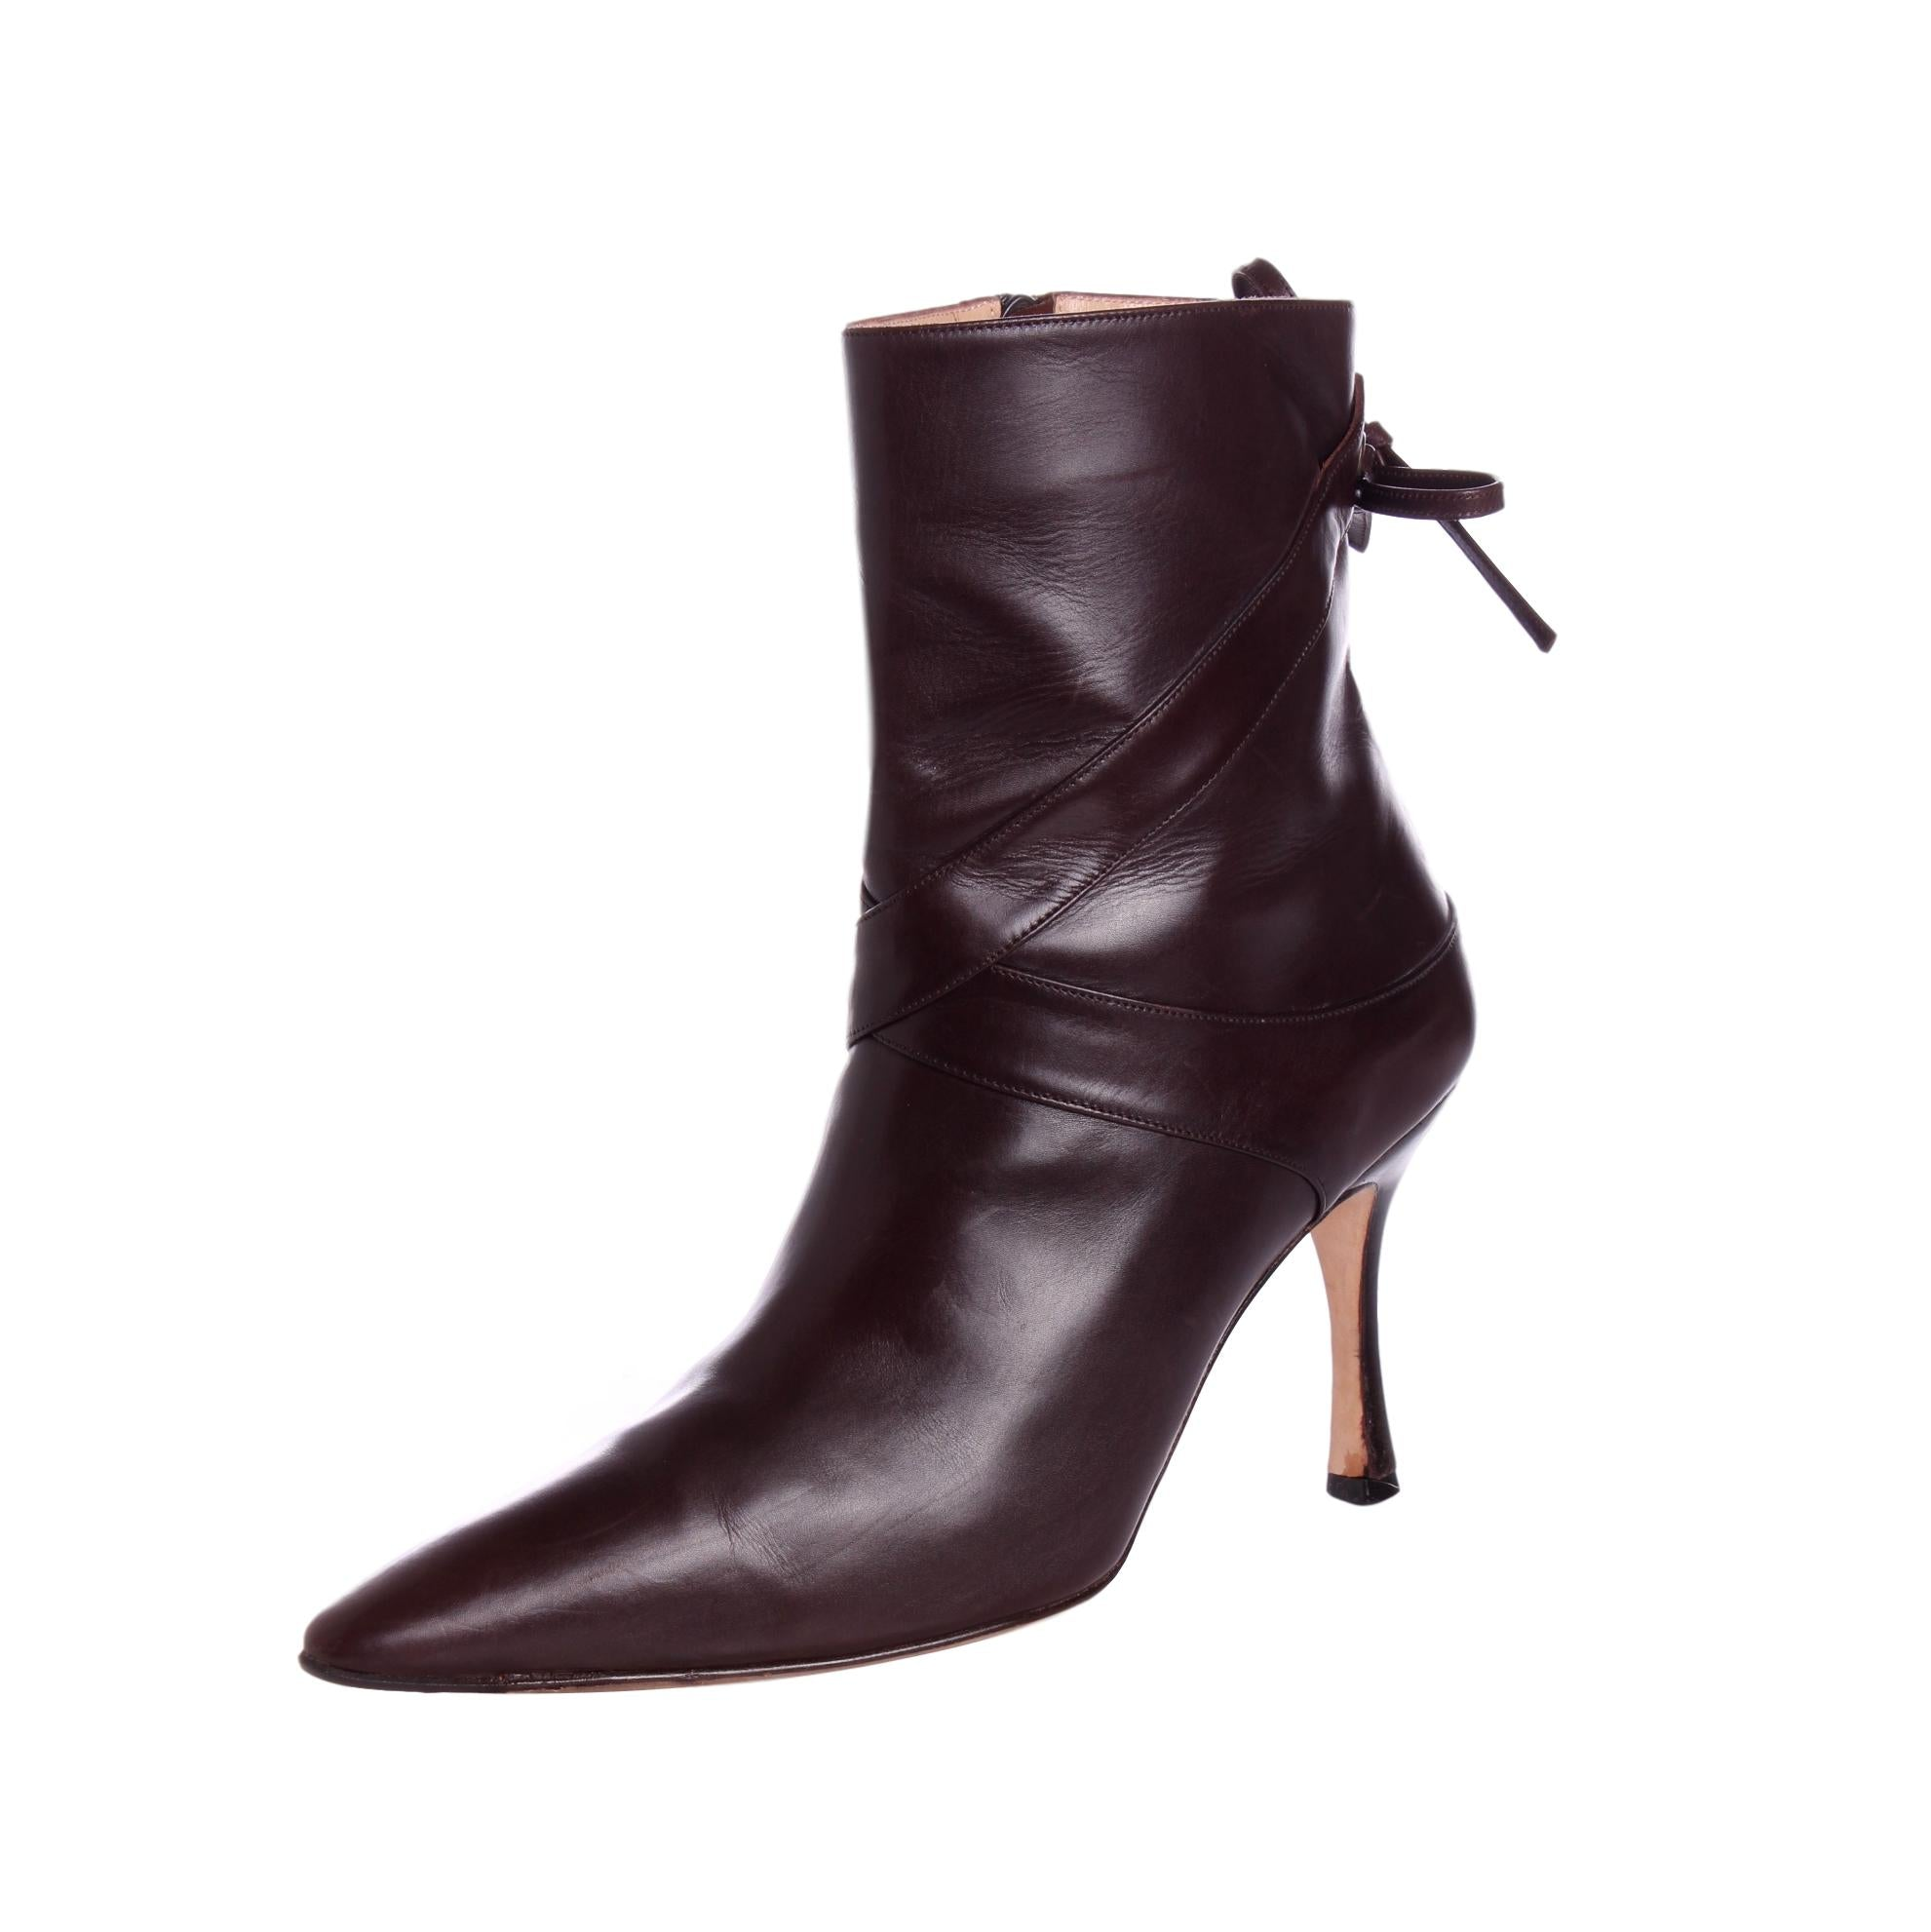 Manolo Blahnik Leather Pointed-Toe Booties Cheapest Price Sale Online Grey Outlet Store Online 99RPMXirvQ